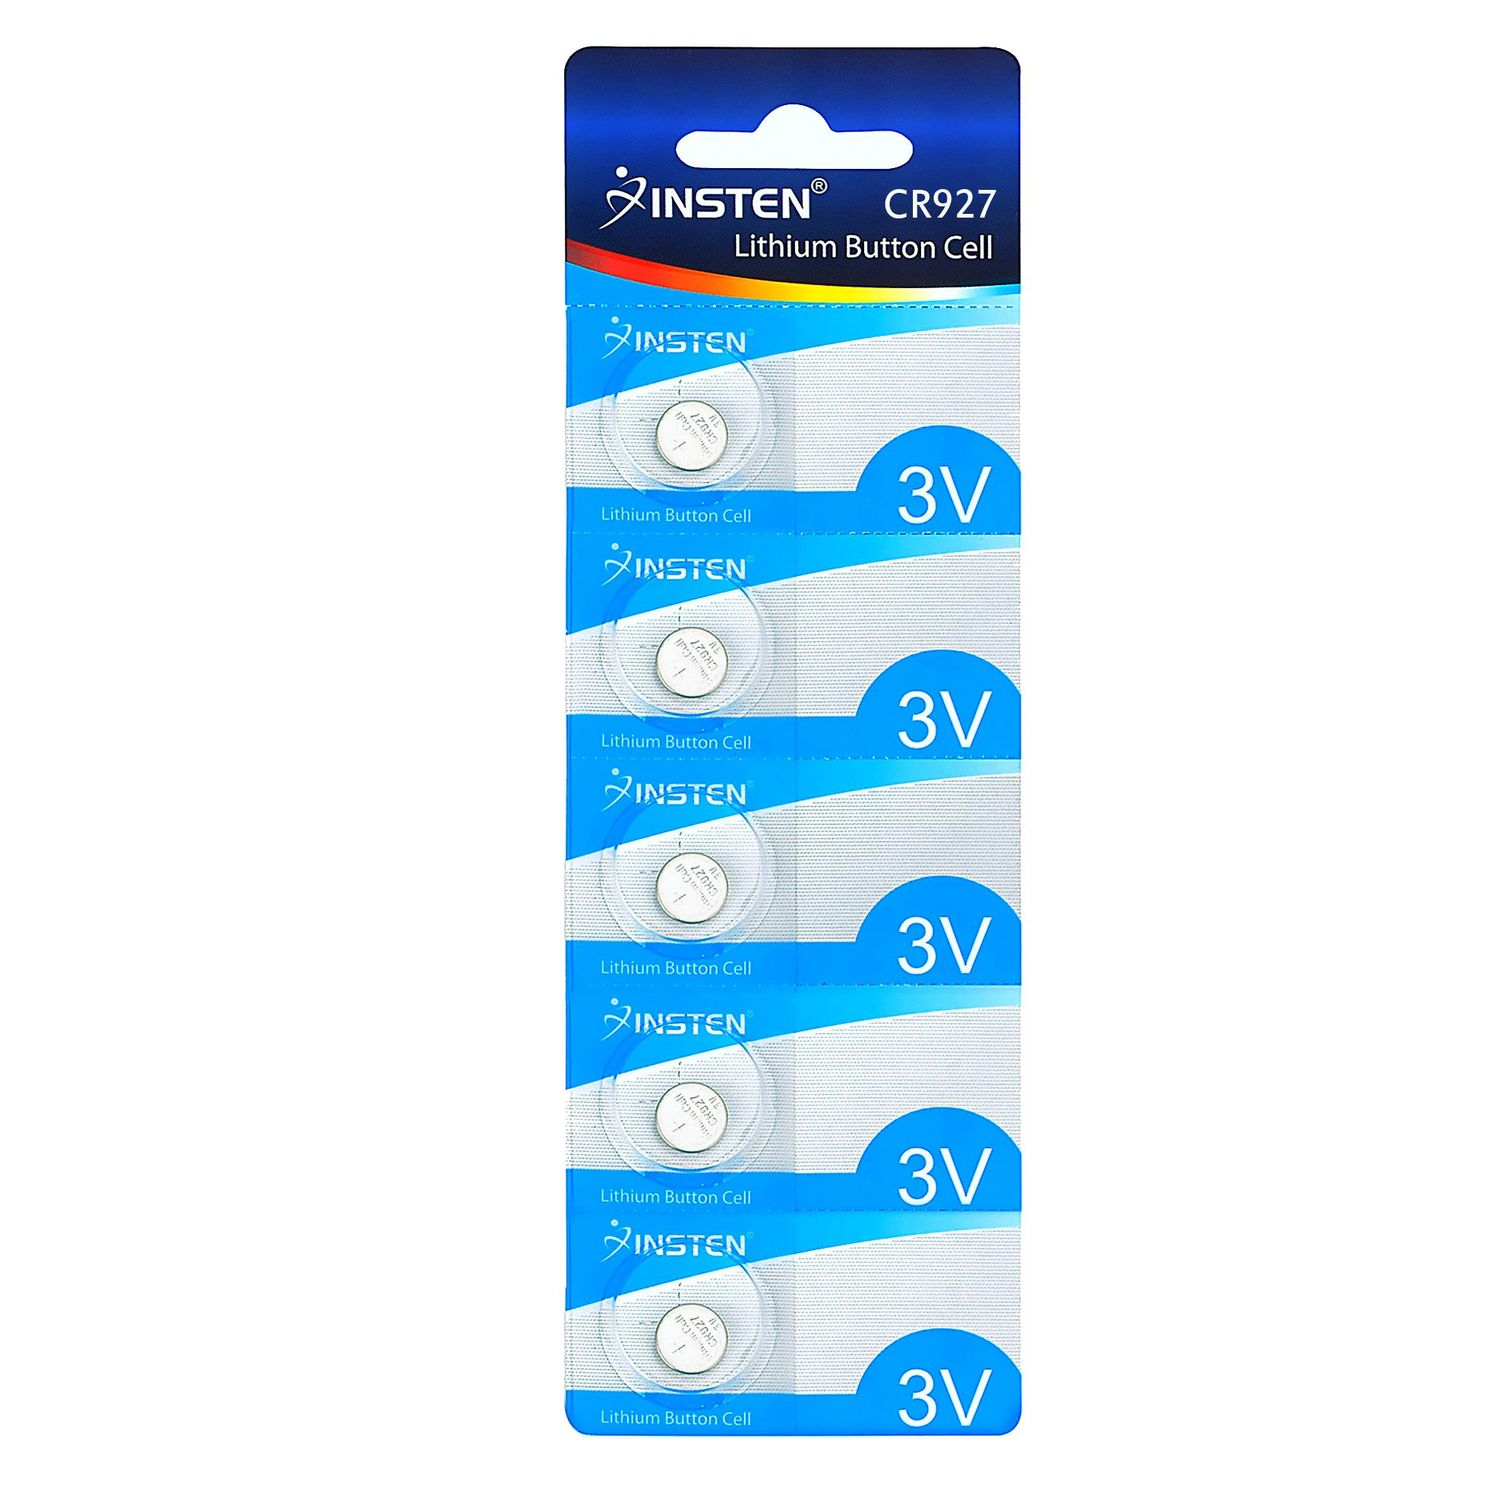 Insten CR927 CR 927 3V Lithium Batteries Coin Button Cell Watch Battery (Pack Of 5-piece)